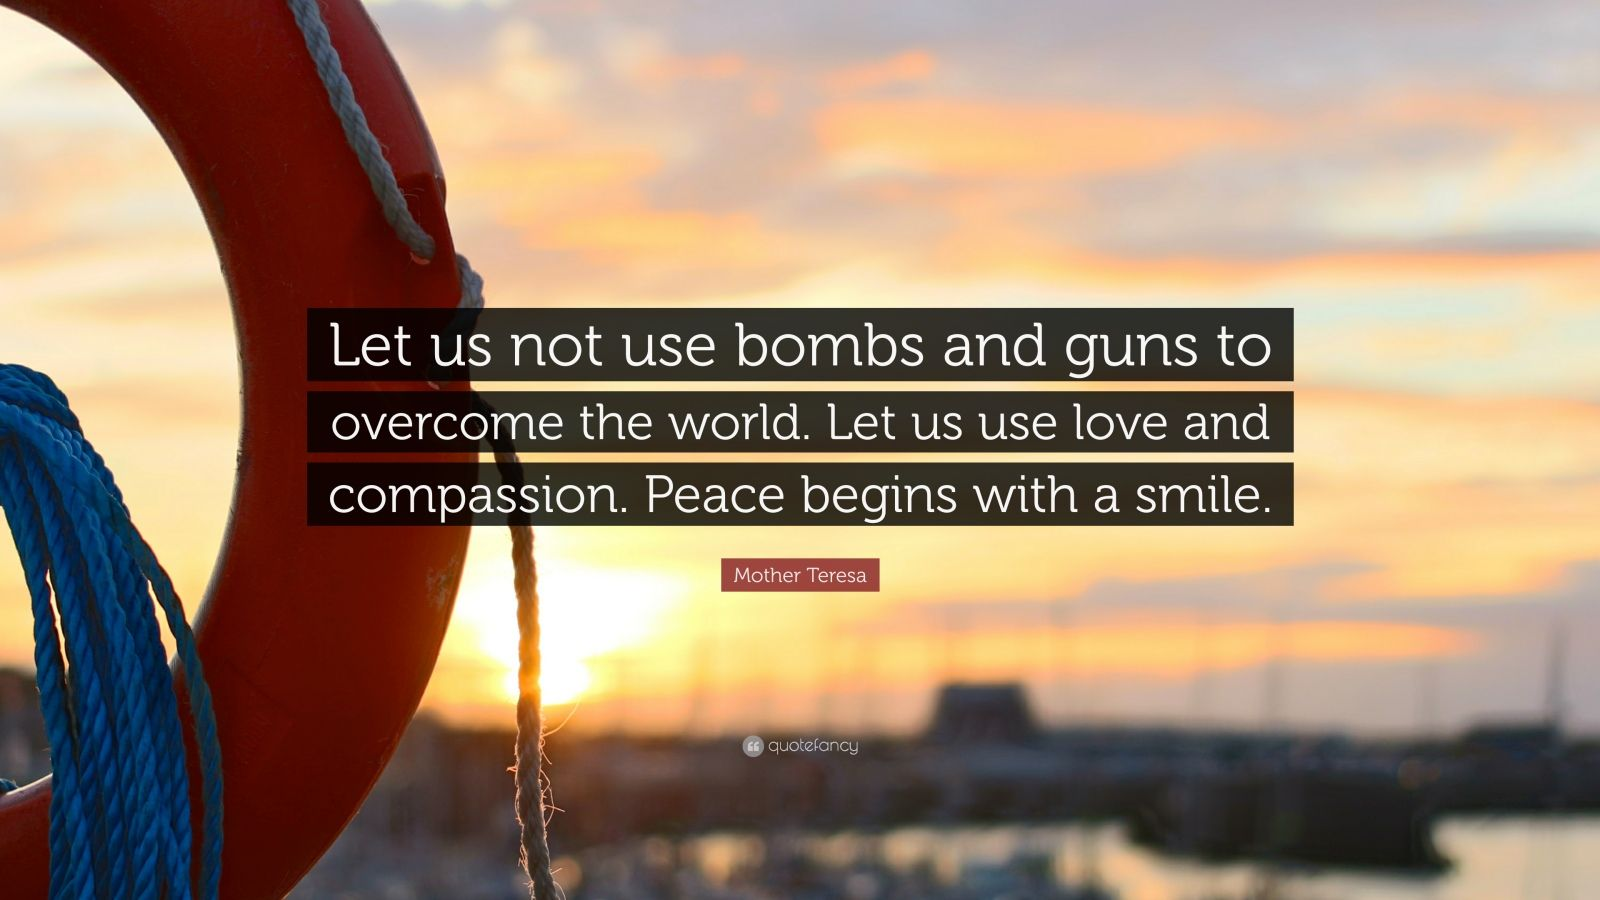 """Mother Teresa Quote: """"Let us not use bombs and guns to overcome the world. Let us use love and compassion. Peace begins with a smile."""""""